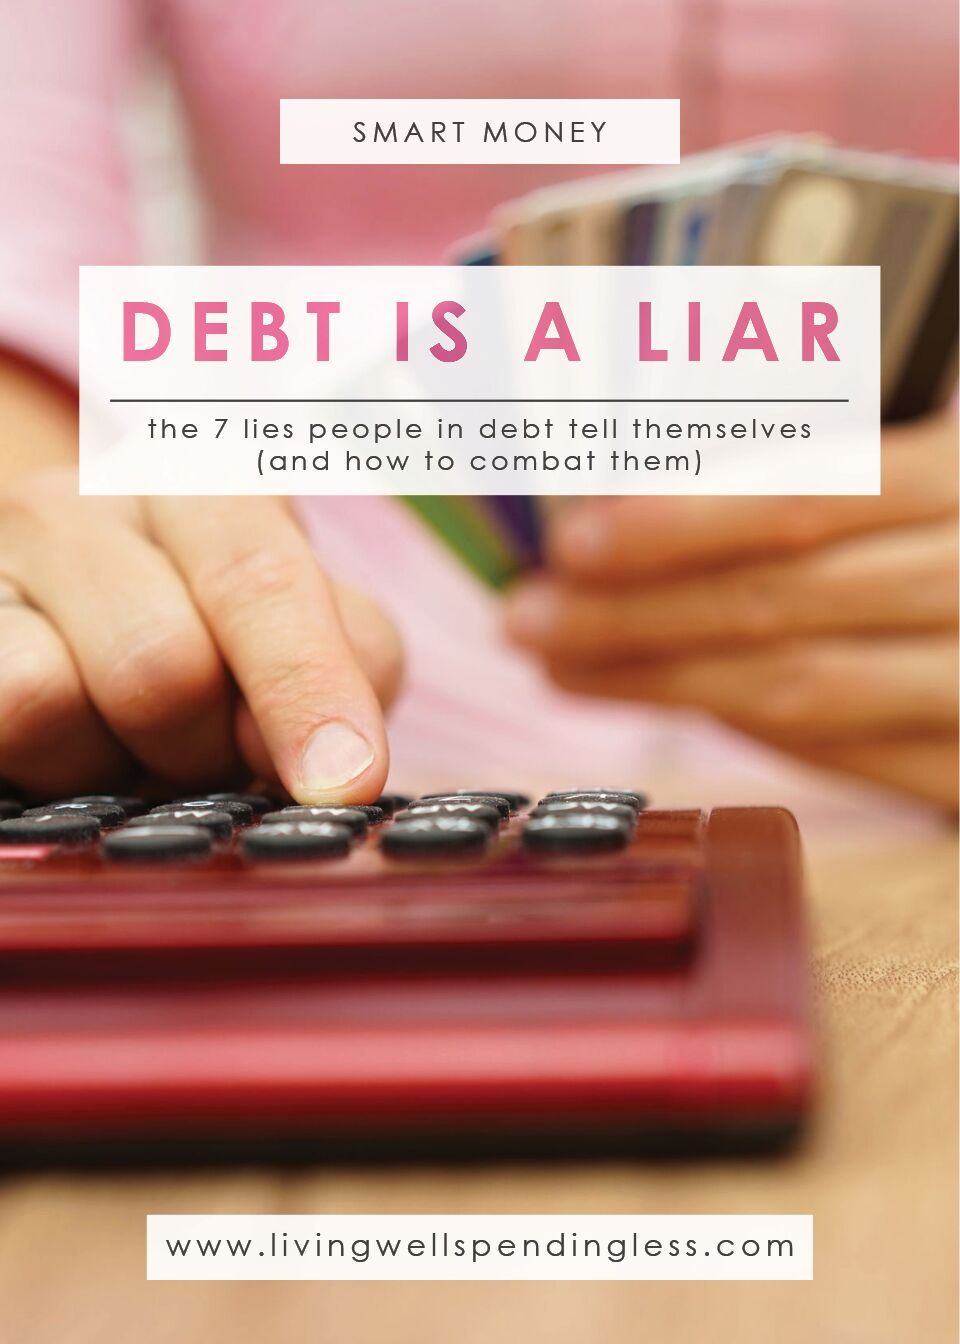 Are you familiar with any of these 7 Lies People in Debt Tell Themselves?